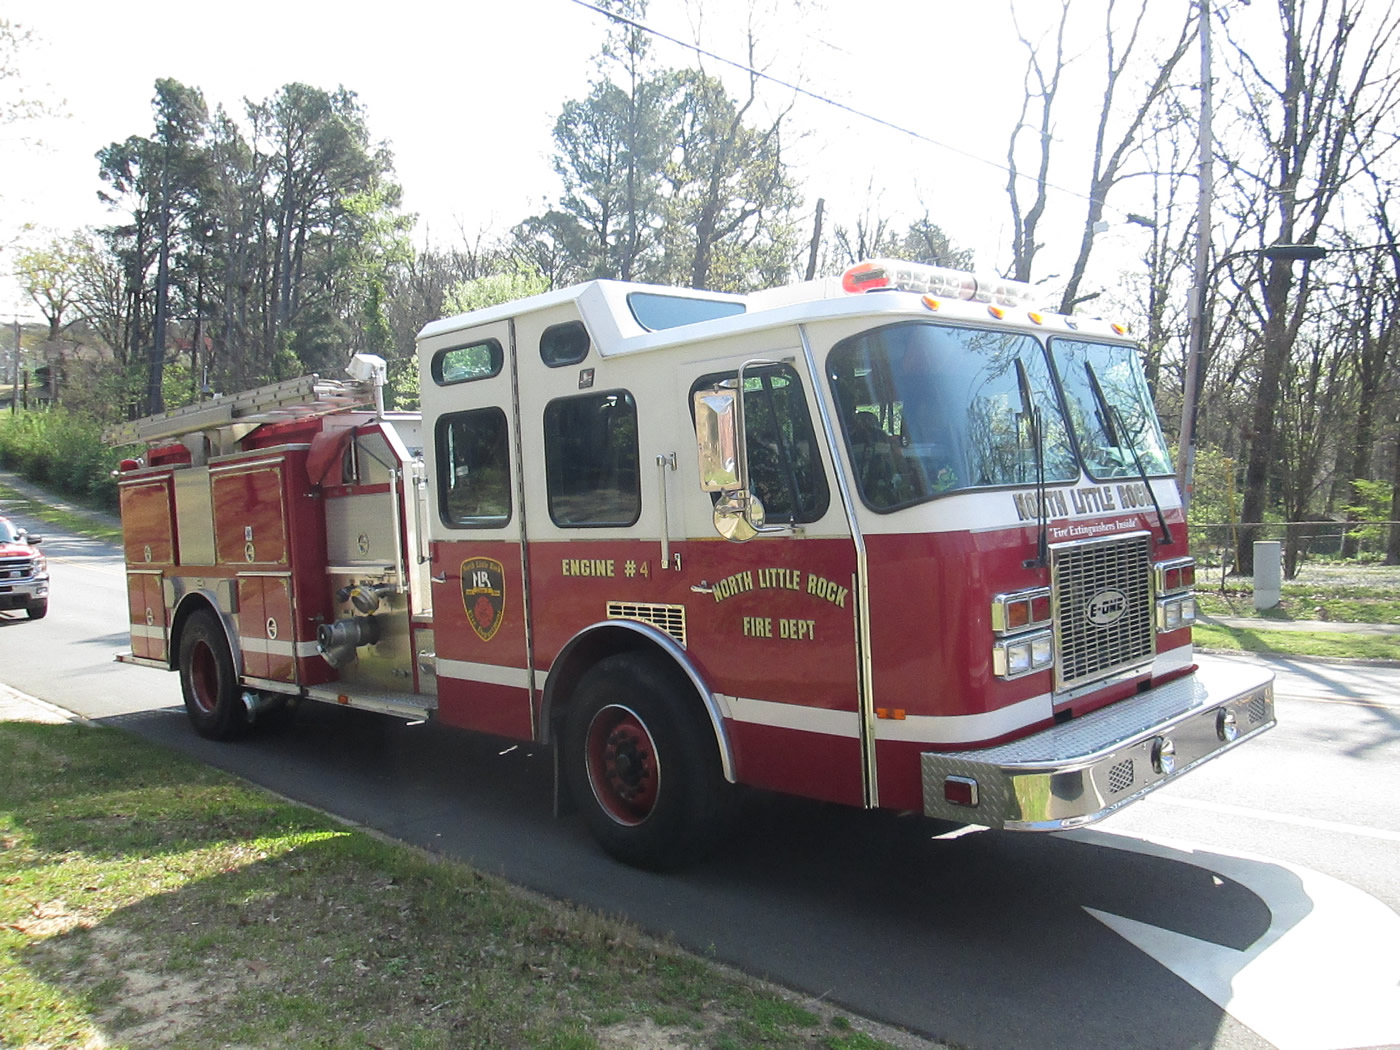 which was assigned to engine 4 is now a reserve engine